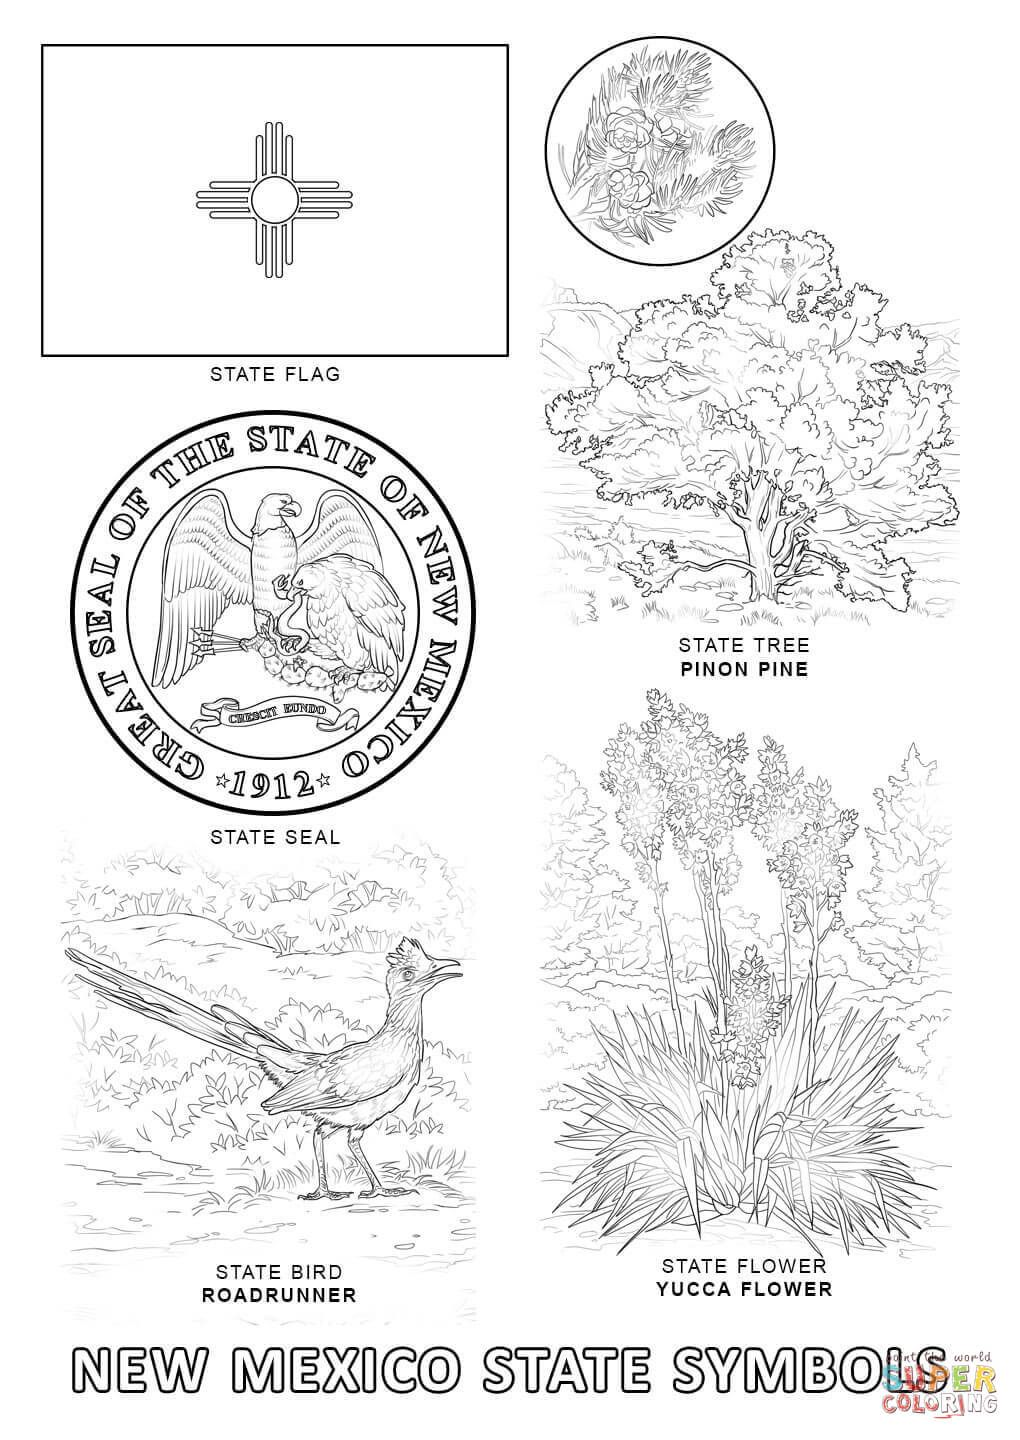 New Mexico State Symbols Super Coloring State Symbols Missouri State History Coloring Pages